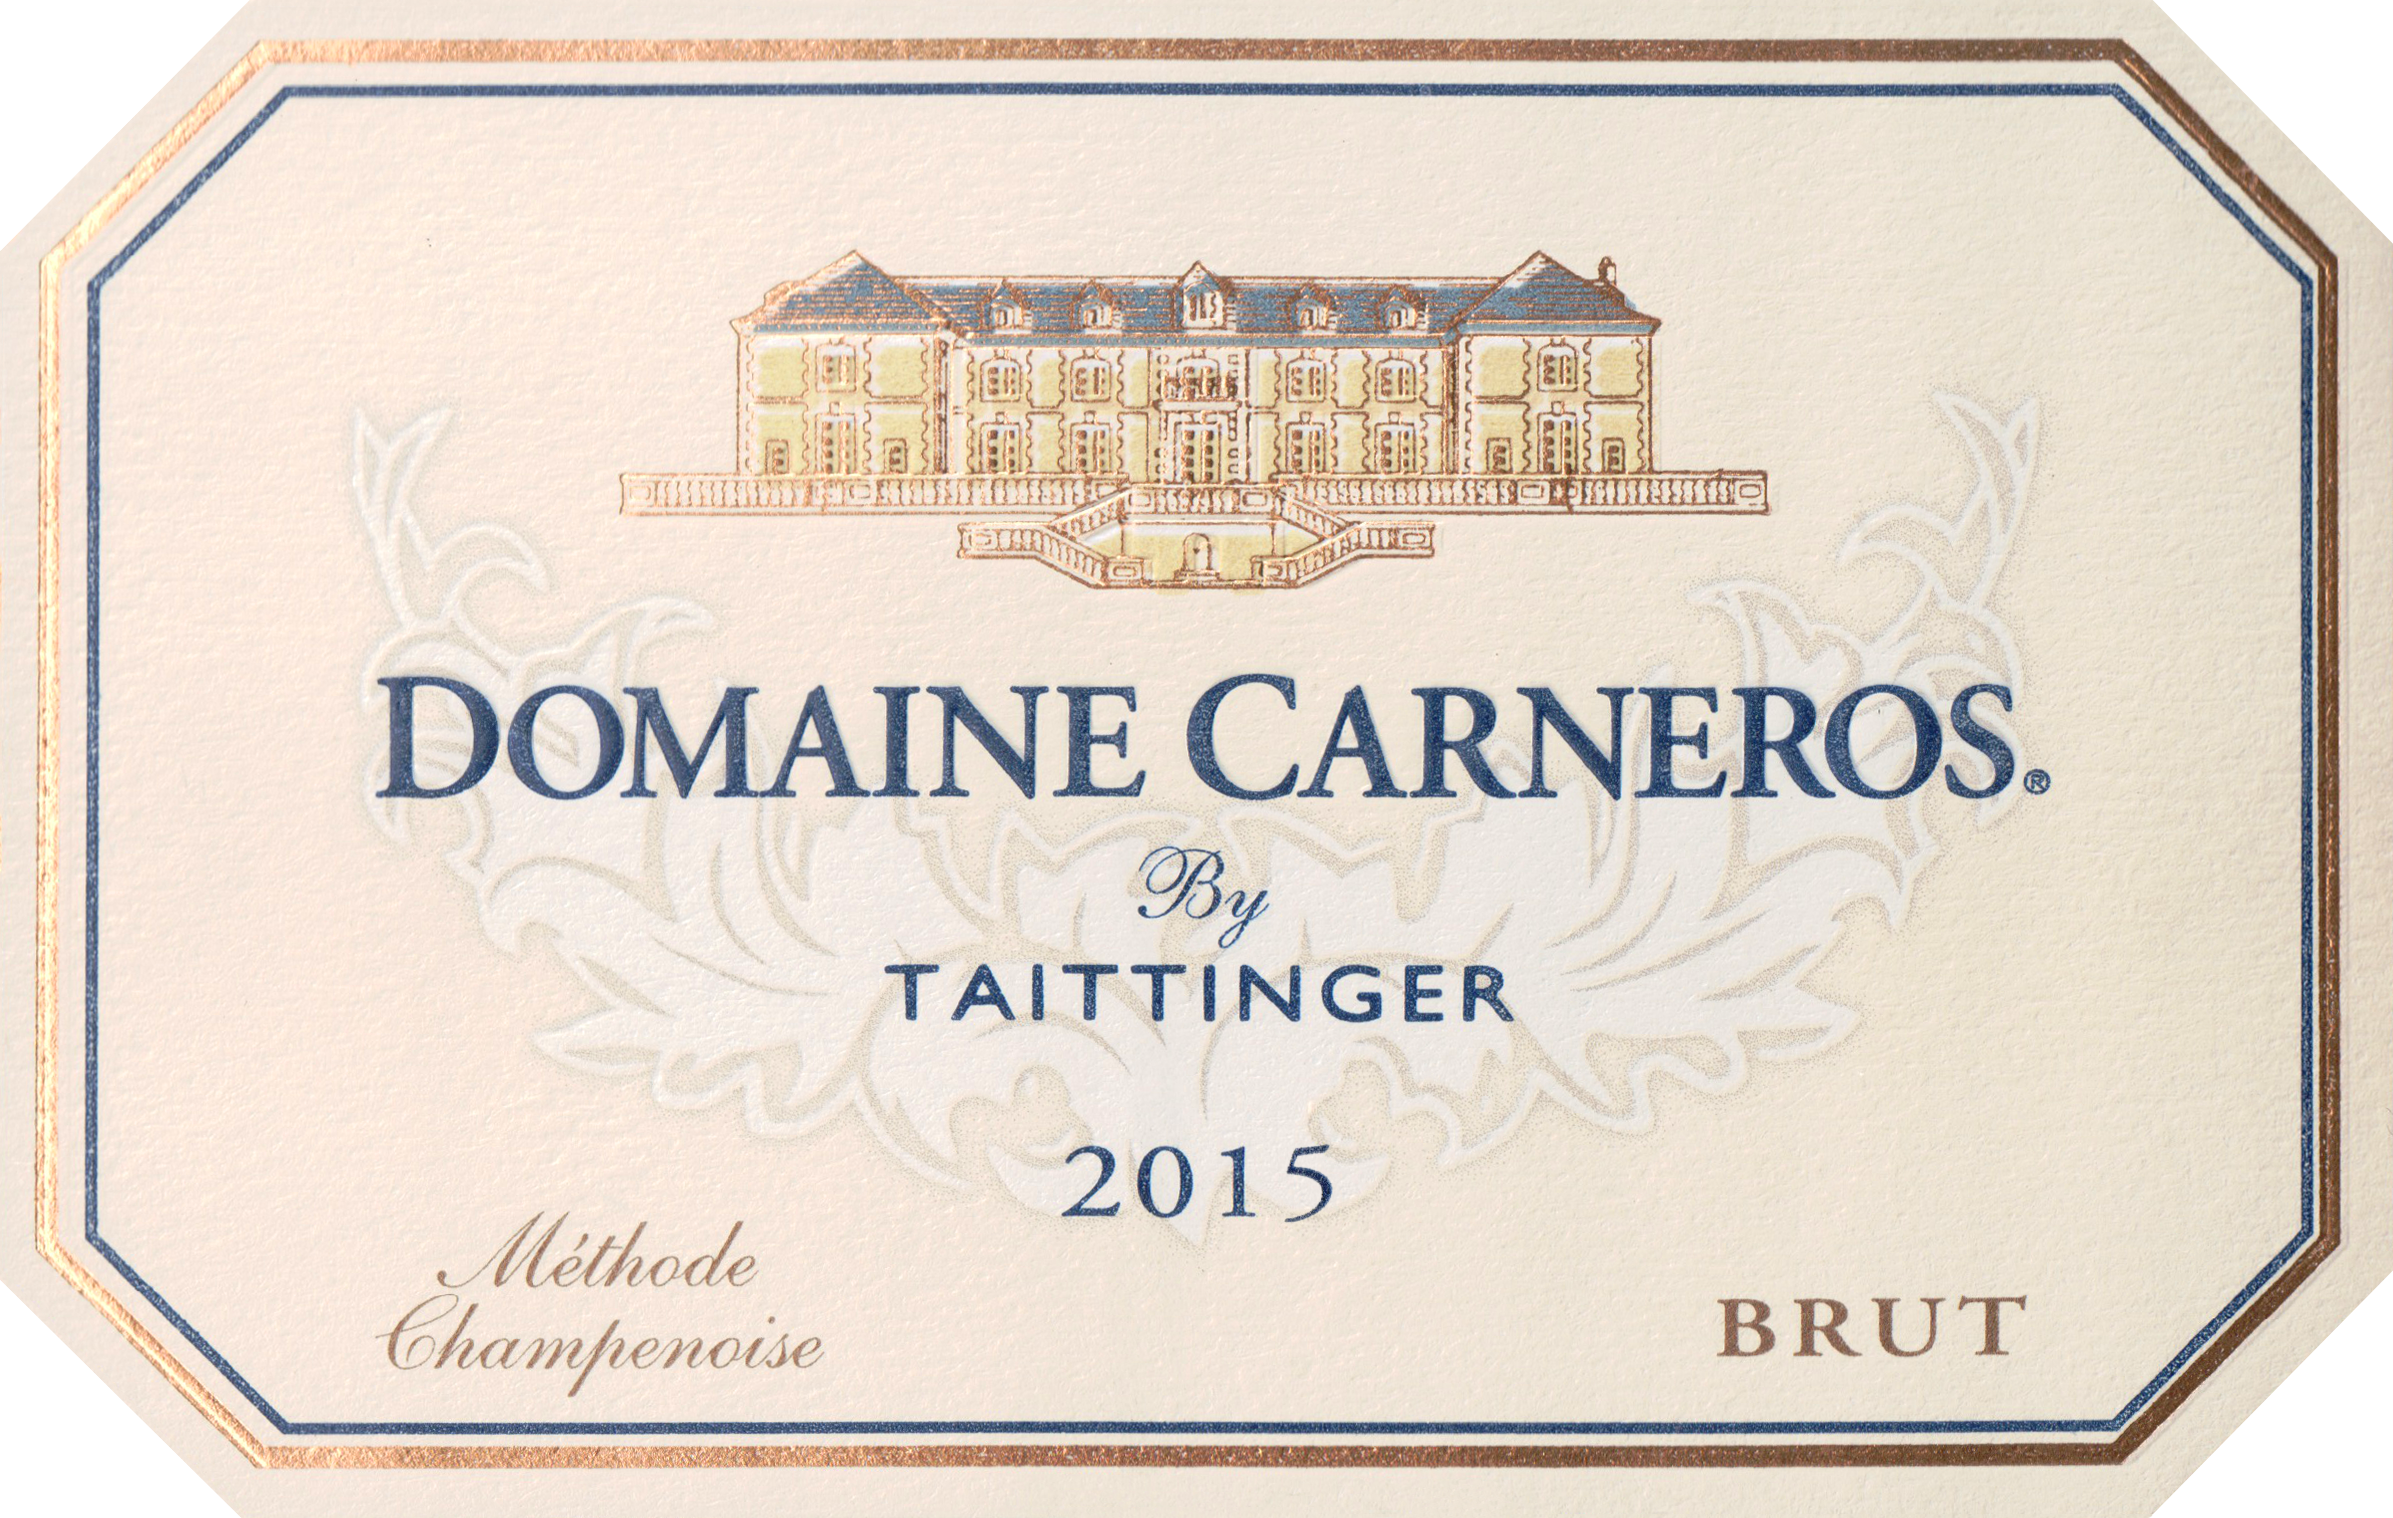 Domaine Carneros Brut By Taittinger 2015